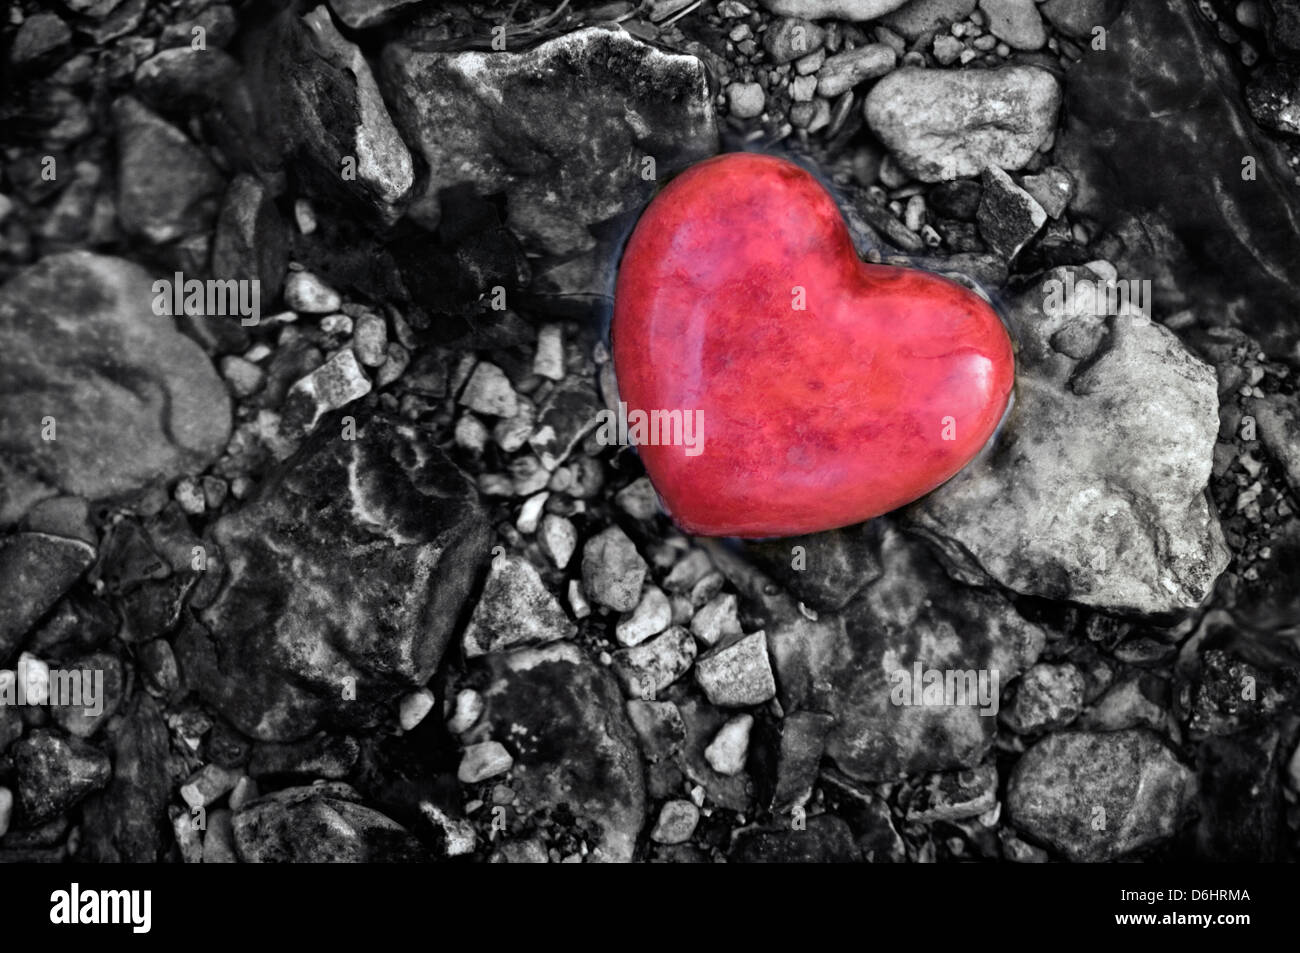 Red Stone Heart Amid Pebbles in a Stream - Stock Image